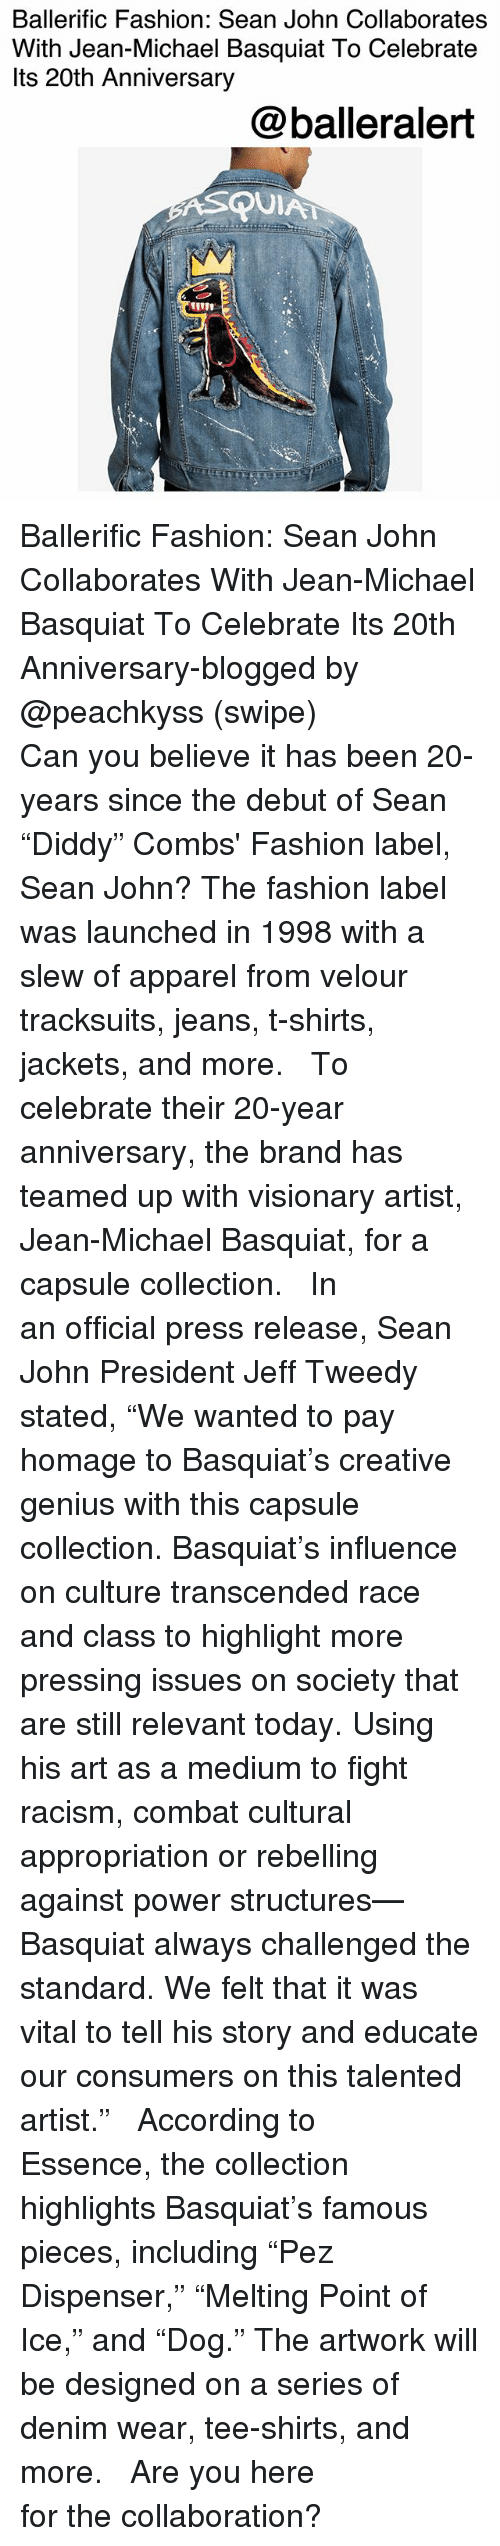 """Fashion, Memes, and Racism: Ballerific Fashion: Sean John Collaborates  With Jean-Michael Basquiat To Celebrate  lts 20th Anniversary  @balleralert  QUIA Ballerific Fashion: Sean John Collaborates With Jean-Michael Basquiat To Celebrate Its 20th Anniversary-blogged by @peachkyss (swipe) ⠀⠀⠀⠀⠀⠀⠀ ⠀⠀⠀⠀⠀⠀⠀ Can you believe it has been 20-years since the debut of Sean """"Diddy"""" Combs' Fashion label, Sean John? The fashion label was launched in 1998 with a slew of apparel from velour tracksuits, jeans, t-shirts, jackets, and more. ⠀⠀⠀⠀⠀⠀⠀ ⠀⠀⠀⠀⠀⠀⠀ To celebrate their 20-year anniversary, the brand has teamed up with visionary artist, Jean-Michael Basquiat, for a capsule collection. ⠀⠀⠀⠀⠀⠀⠀ ⠀⠀⠀⠀⠀⠀⠀ In an official press release, Sean John President Jeff Tweedy stated, """"We wanted to pay homage to Basquiat's creative genius with this capsule collection. Basquiat's influence on culture transcended race and class to highlight more pressing issues on society that are still relevant today. Using his art as a medium to fight racism, combat cultural appropriation or rebelling against power structures—Basquiat always challenged the standard. We felt that it was vital to tell his story and educate our consumers on this talented artist."""" ⠀⠀⠀⠀⠀⠀⠀ ⠀⠀⠀⠀⠀⠀⠀ According to Essence, the collection highlights Basquiat's famous pieces, including """"Pez Dispenser,"""" """"Melting Point of Ice,"""" and """"Dog."""" The artwork will be designed on a series of denim wear, tee-shirts, and more. ⠀⠀⠀⠀⠀⠀⠀ ⠀⠀⠀⠀⠀⠀⠀ Are you here for the collaboration?"""